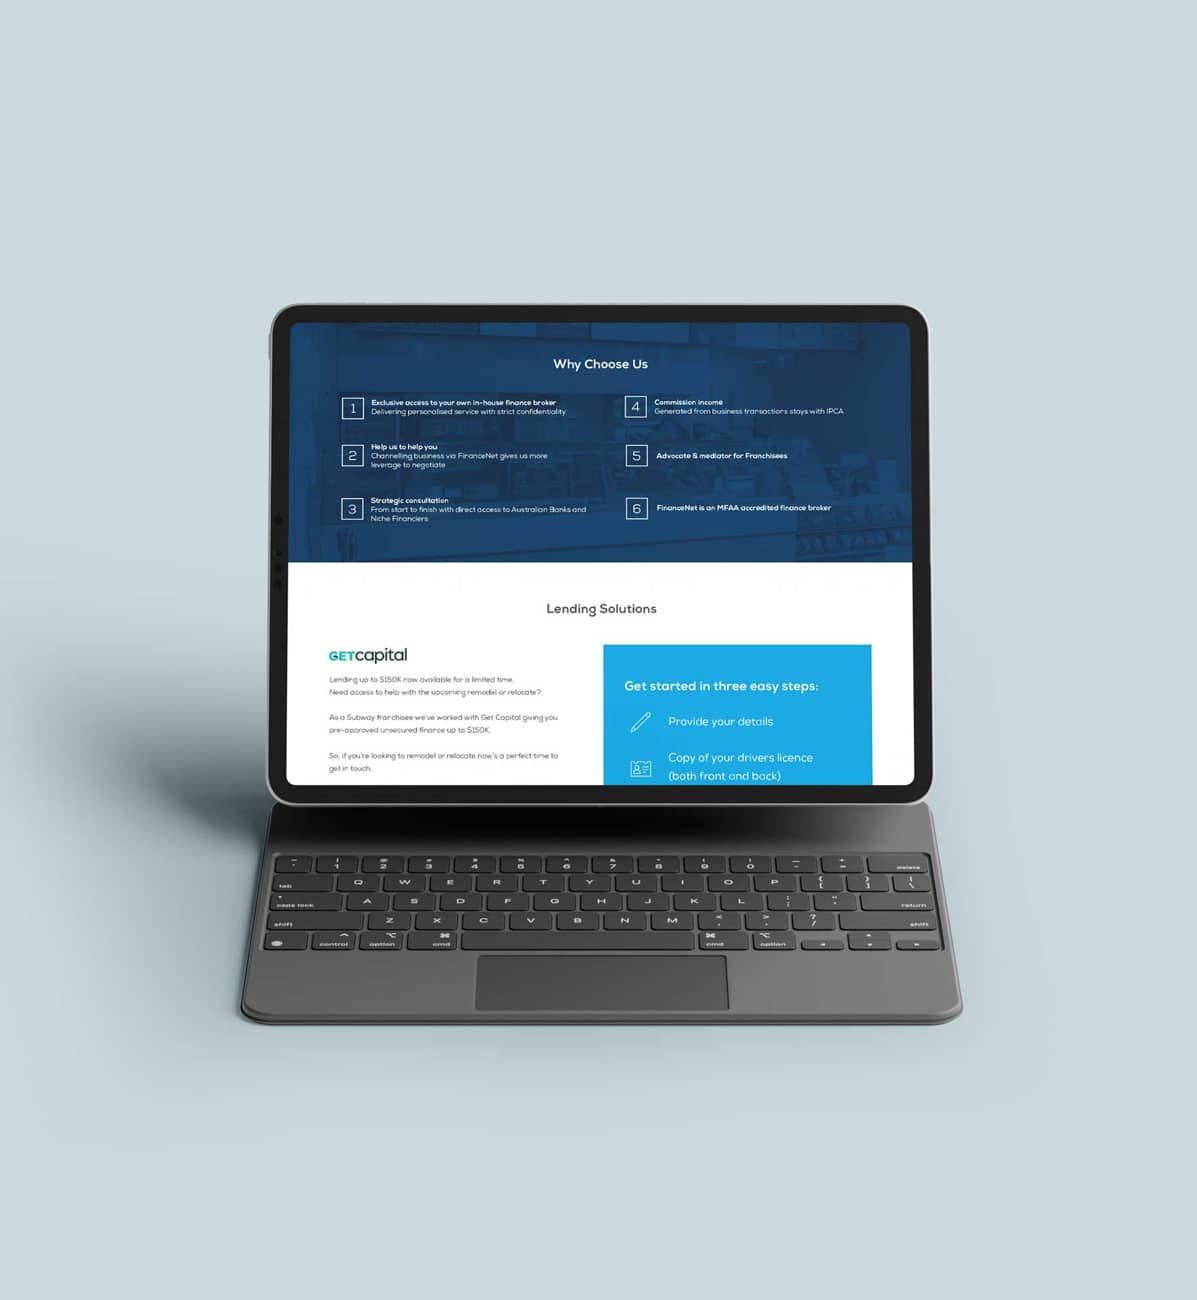 Finance services website design in blue and white